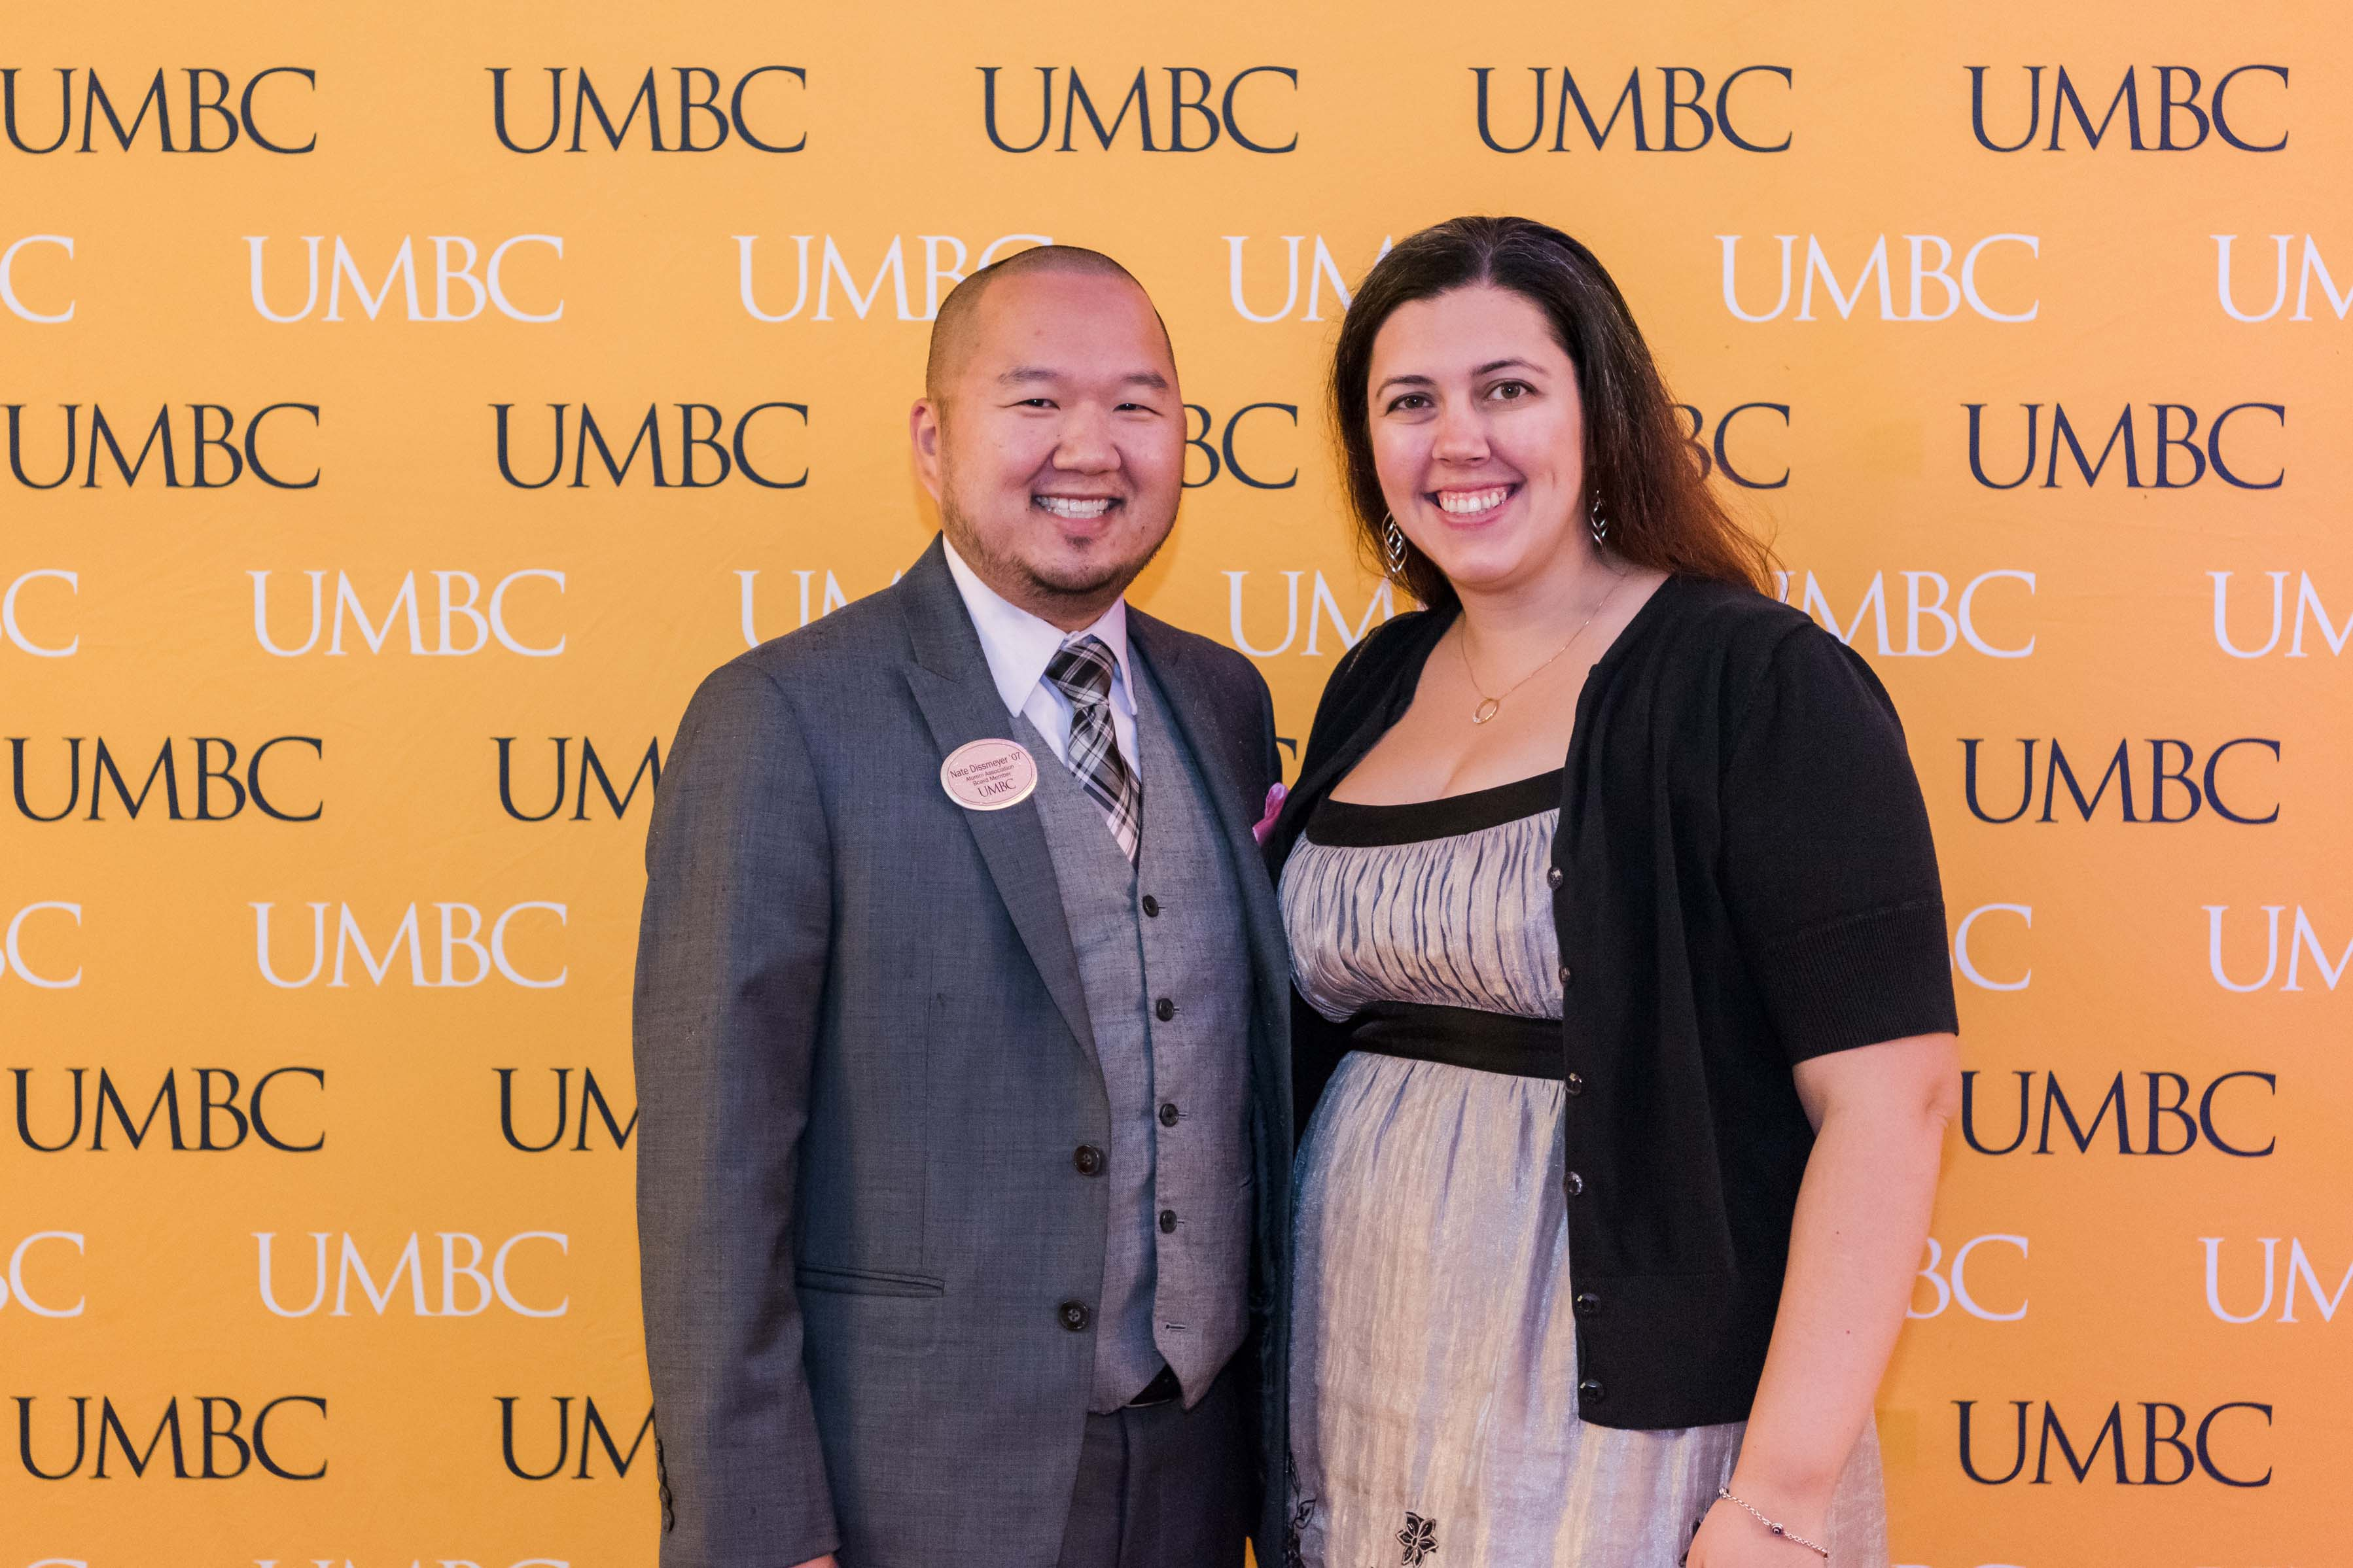 Man and woman pose together at UMBC wall for wine tasting